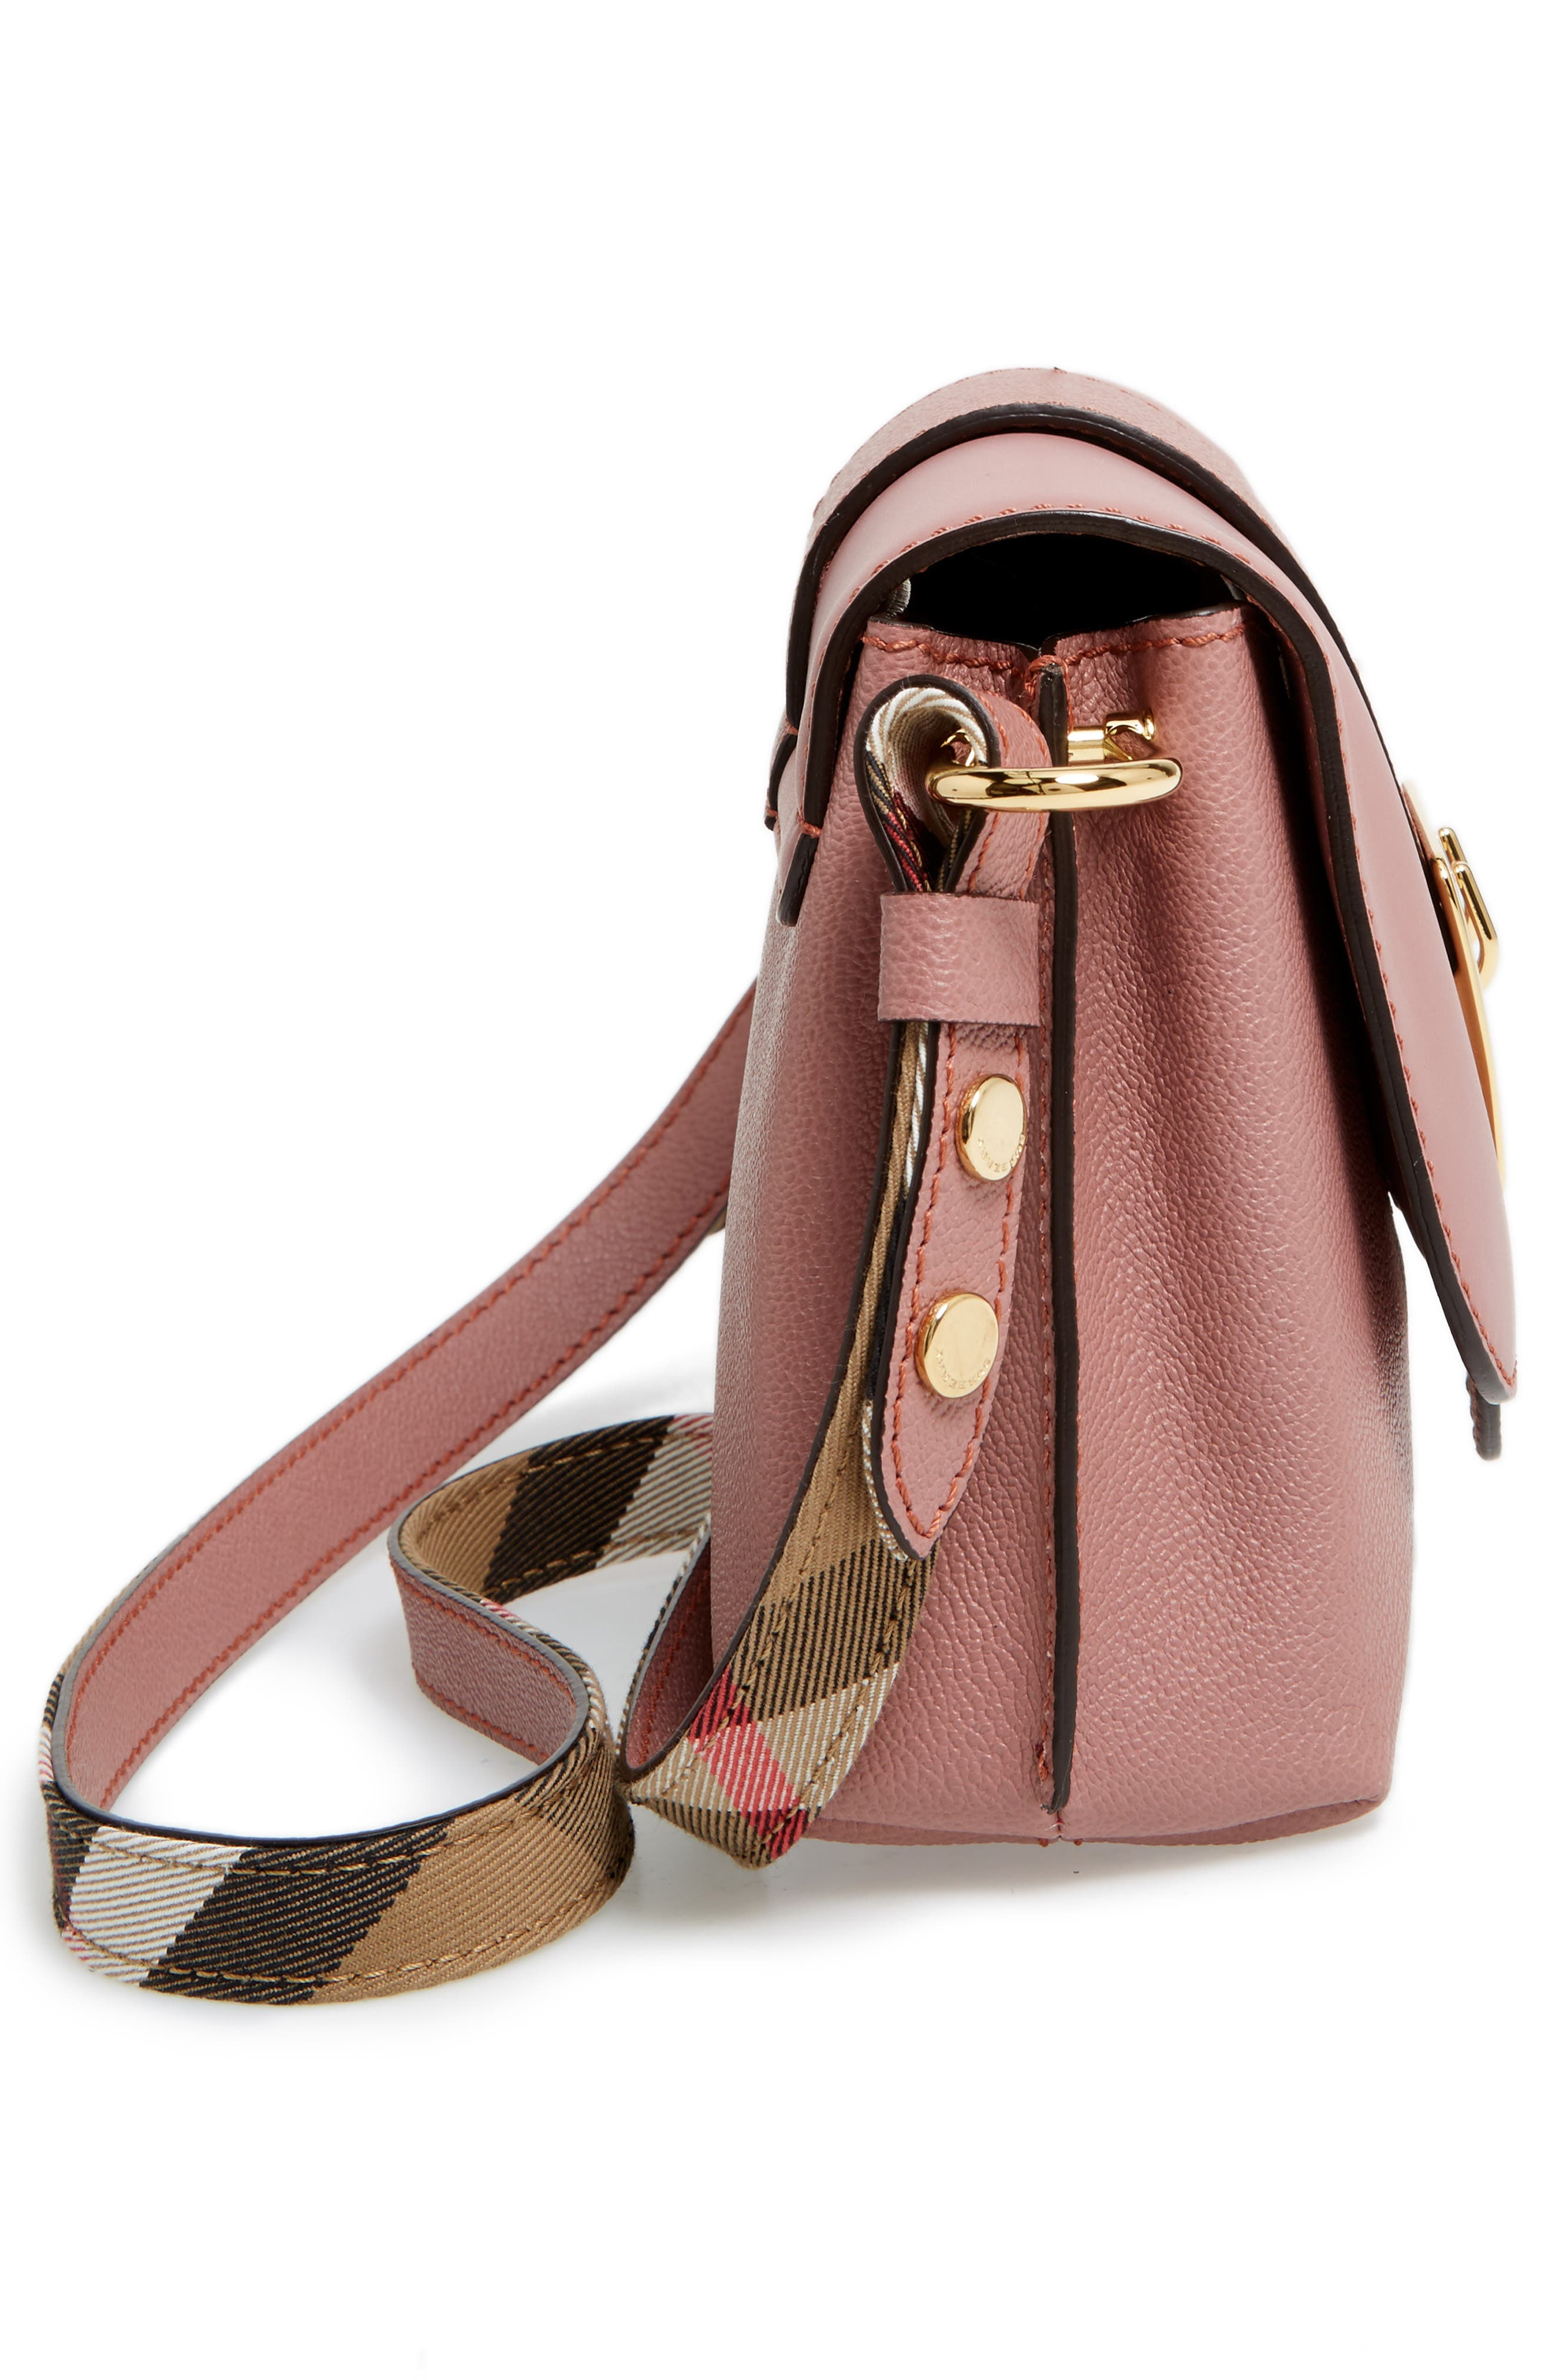 Small Medley Leather Shoulder Bag,                             Alternate thumbnail 5, color,                             Dusty Pink